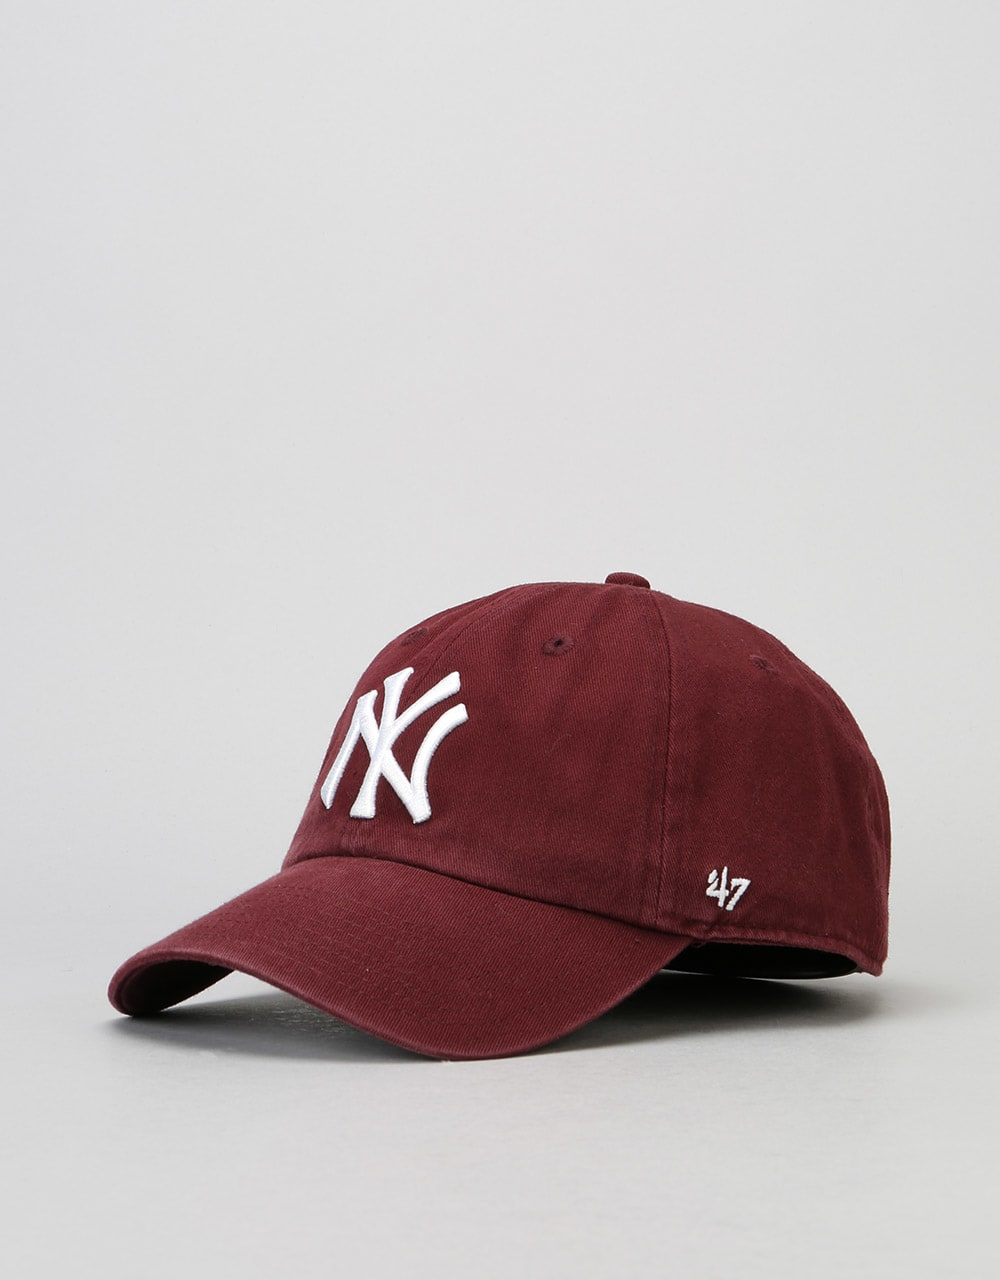 47 Brand MLB New York Yankees Clean Up Cap - Dark Maroon  ded21774a5dd